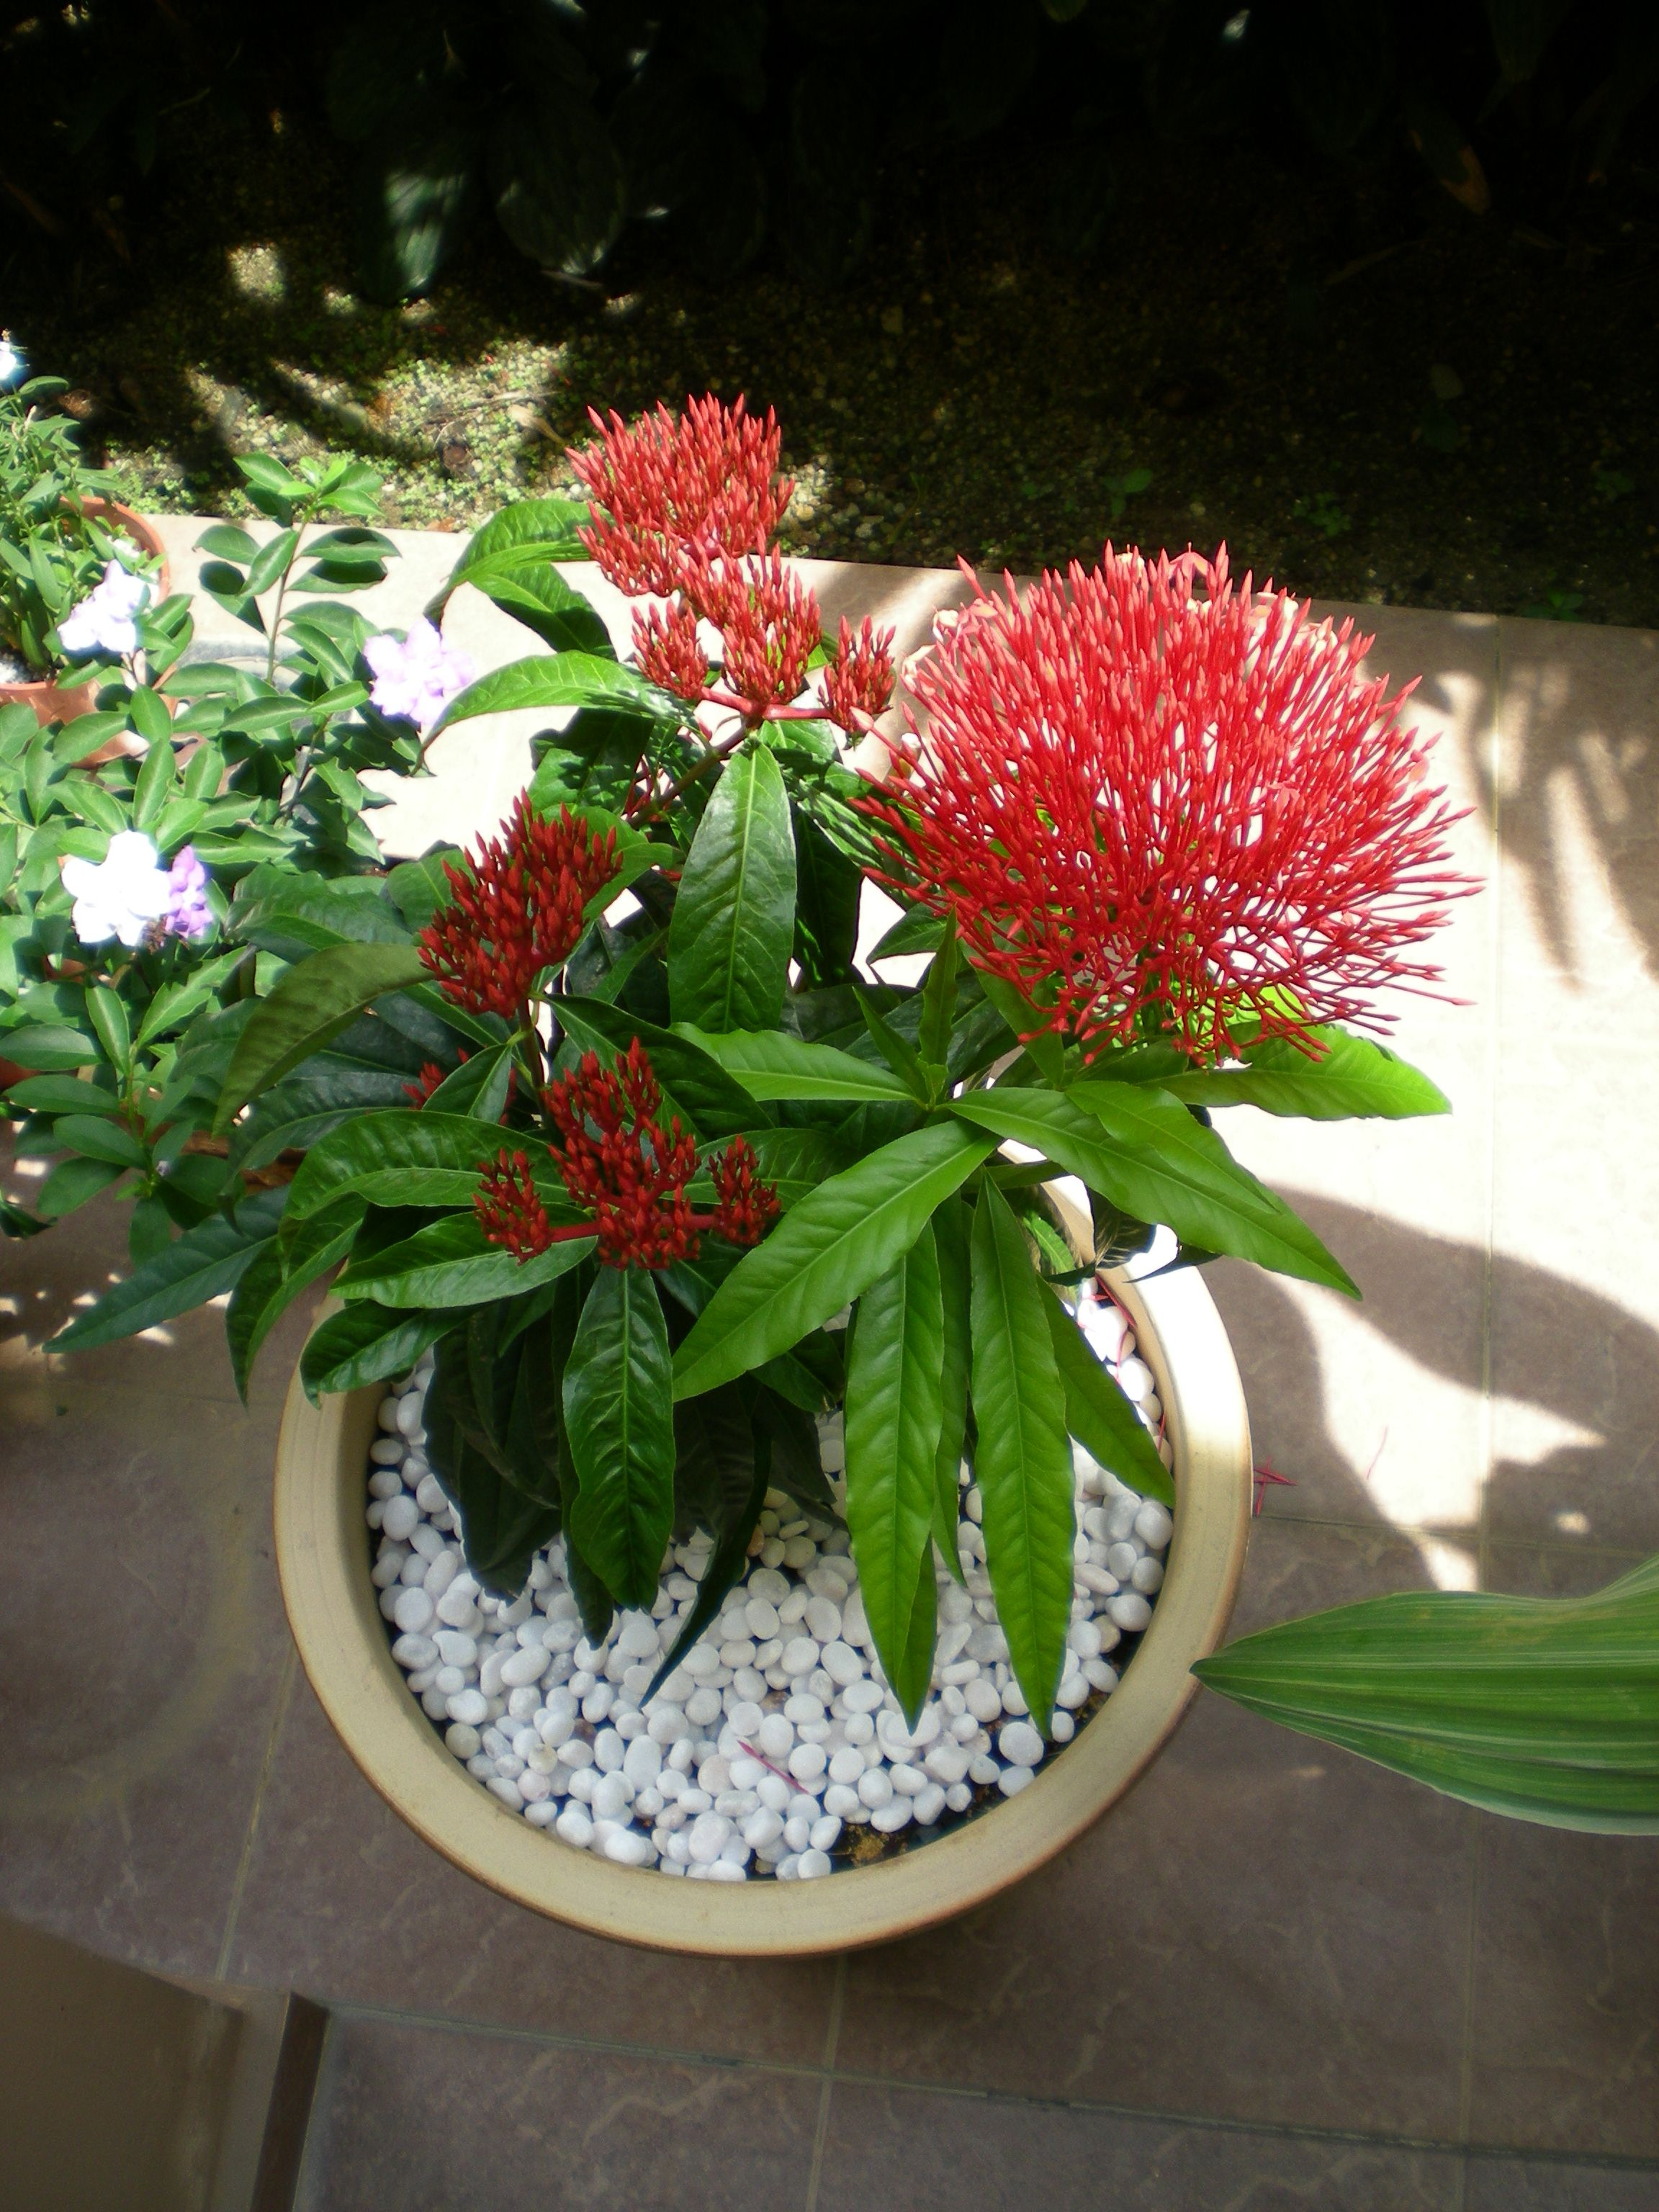 Buy Ixora In Orlando Florida Lake Mary Kissimmee Sanford: Aaron's Gardening Blog: The Hot, The Loud, And The Proud